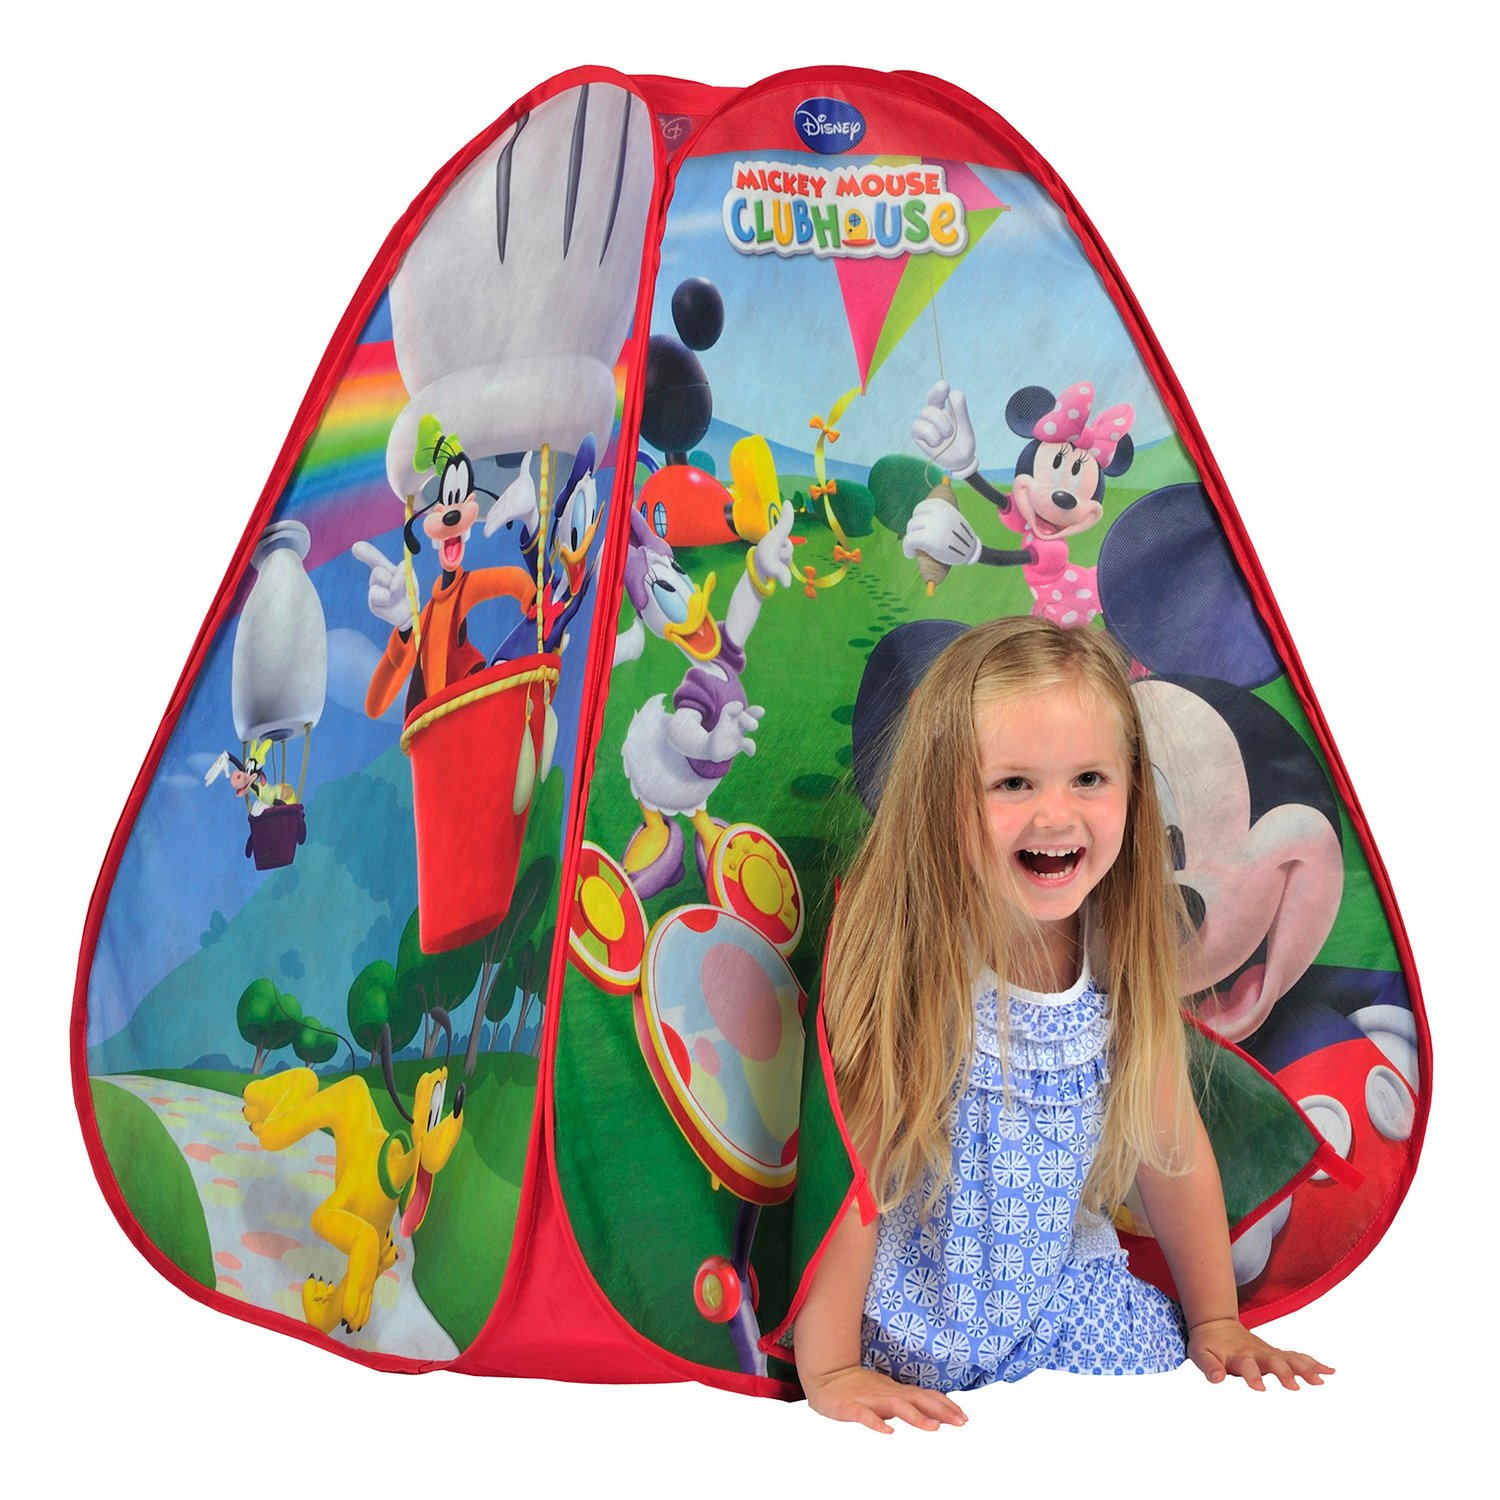 Amazon.com Knorrtoys N6637 Popup Tent - Mickey Mouse Clubhouse by Knorrtoys Toys u0026 Games  sc 1 st  Amazon.com & Amazon.com: Knorrtoys N6637 Popup Tent - Mickey Mouse Clubhouse by ...